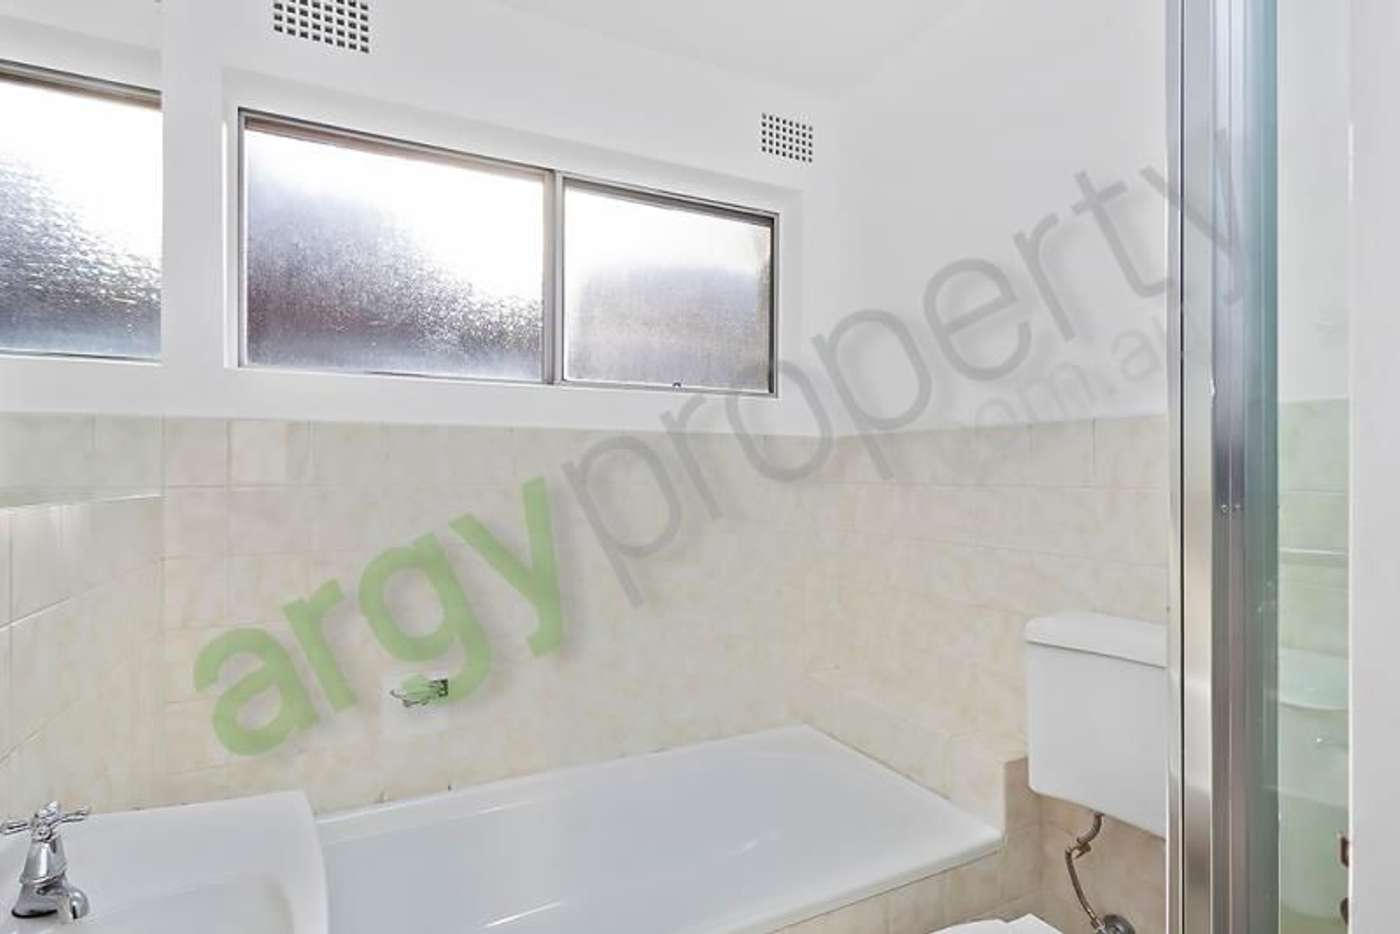 Sixth view of Homely unit listing, 4/8-10 President Ave, Kogarah NSW 2217